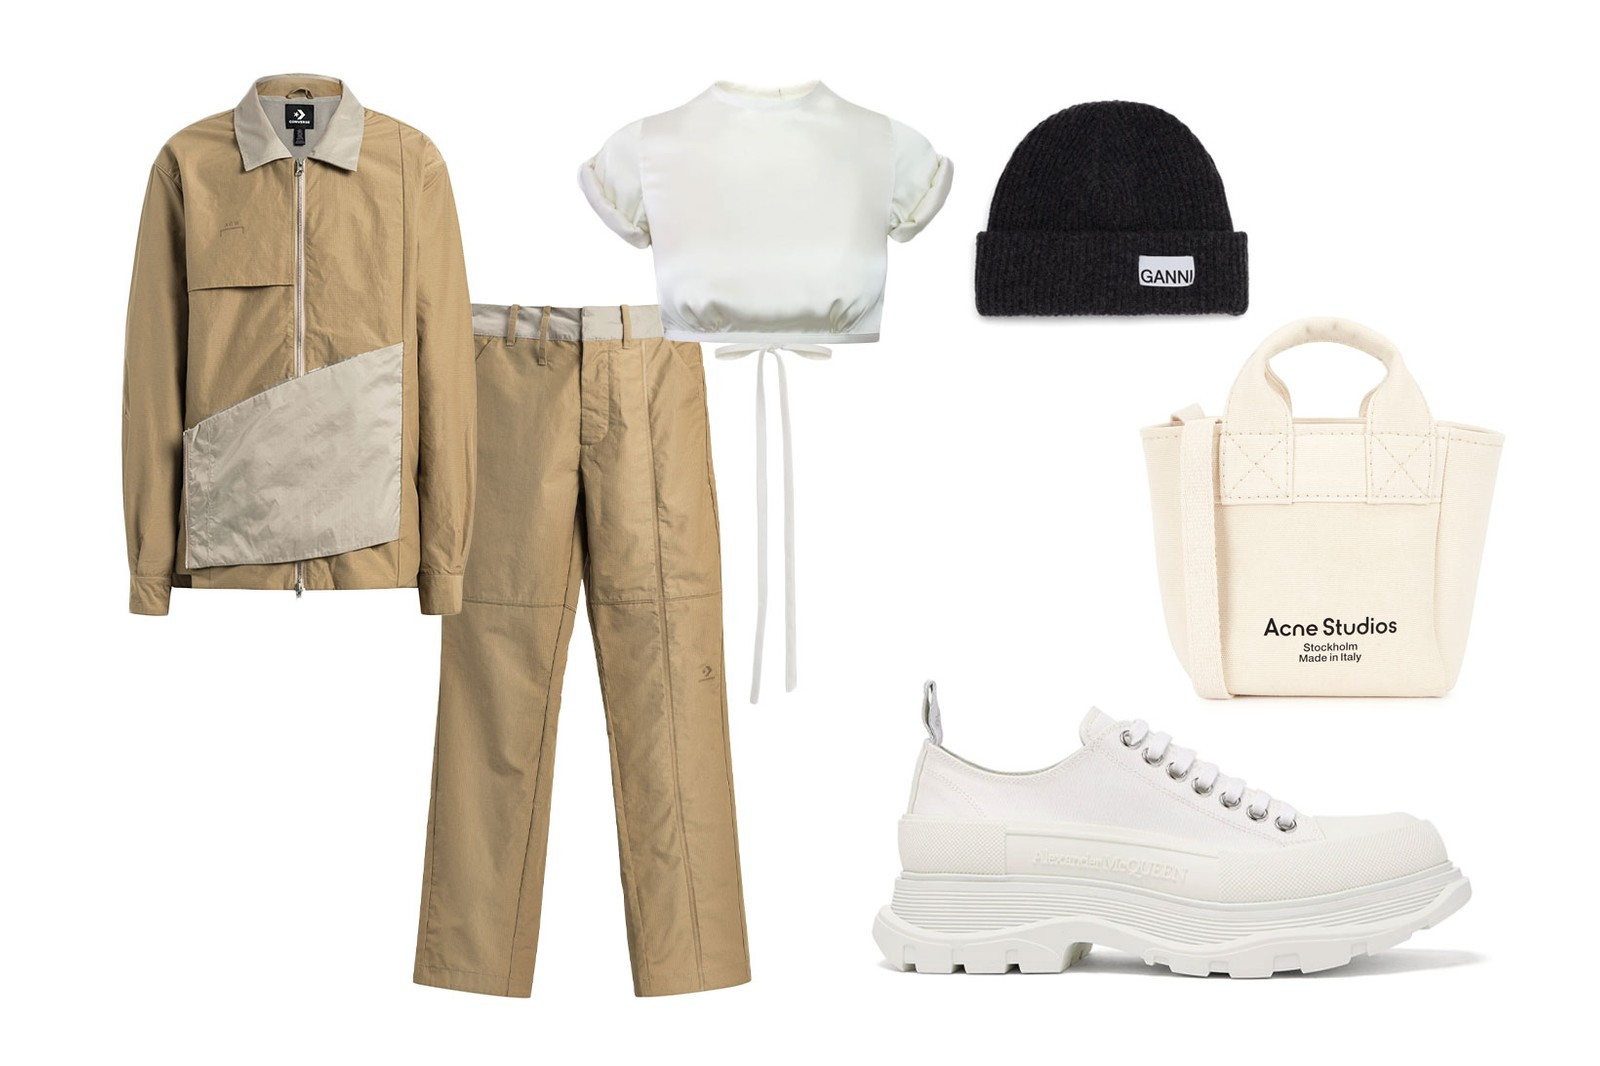 tracksuits styling guide editors outfit a cold wall acw converse orseund iris alexander mcqueen ganni acne studios